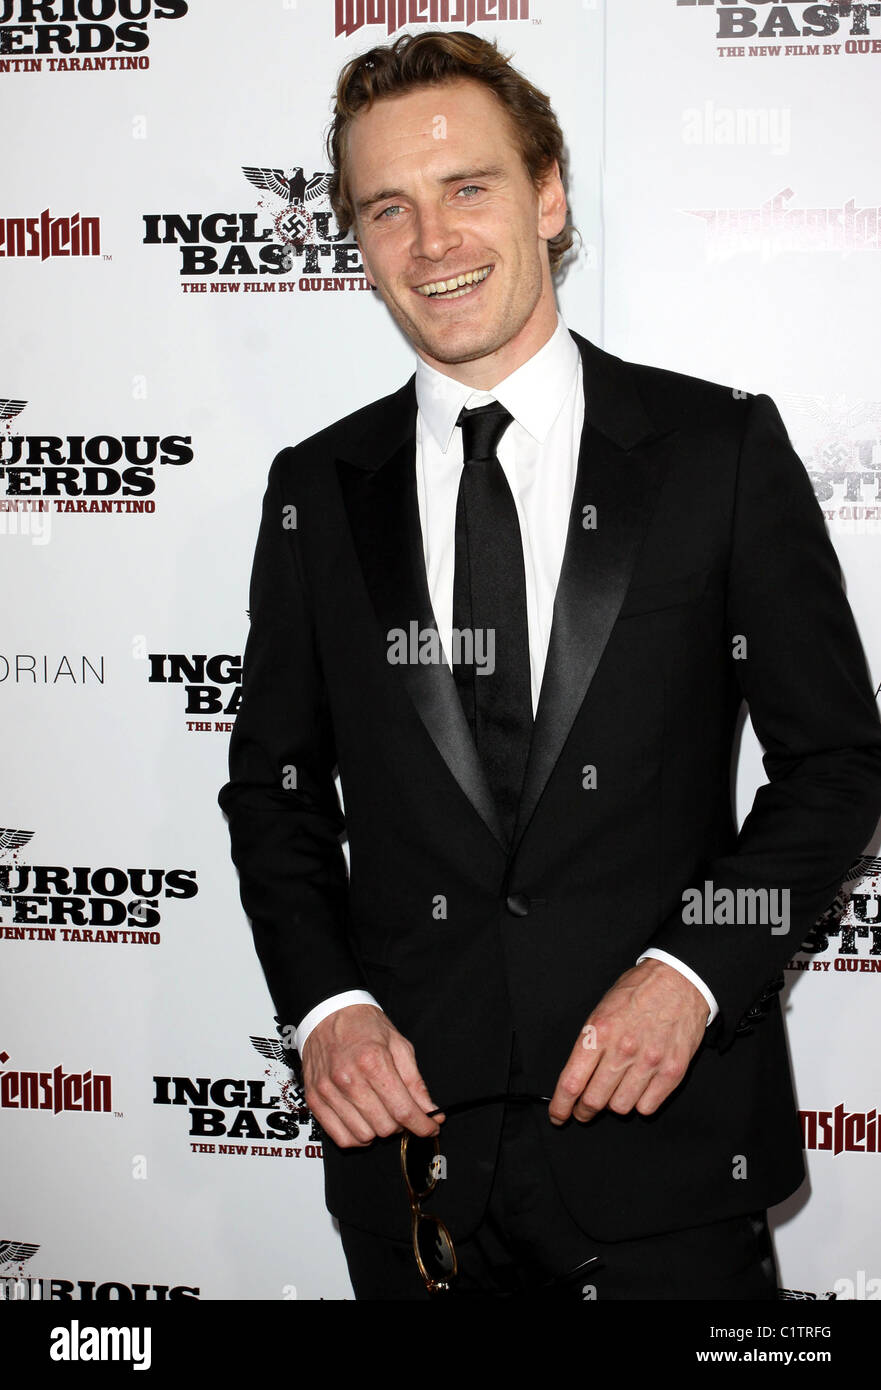 Michael Fassbender Los Angeles Premiere of Inglourious Basterds